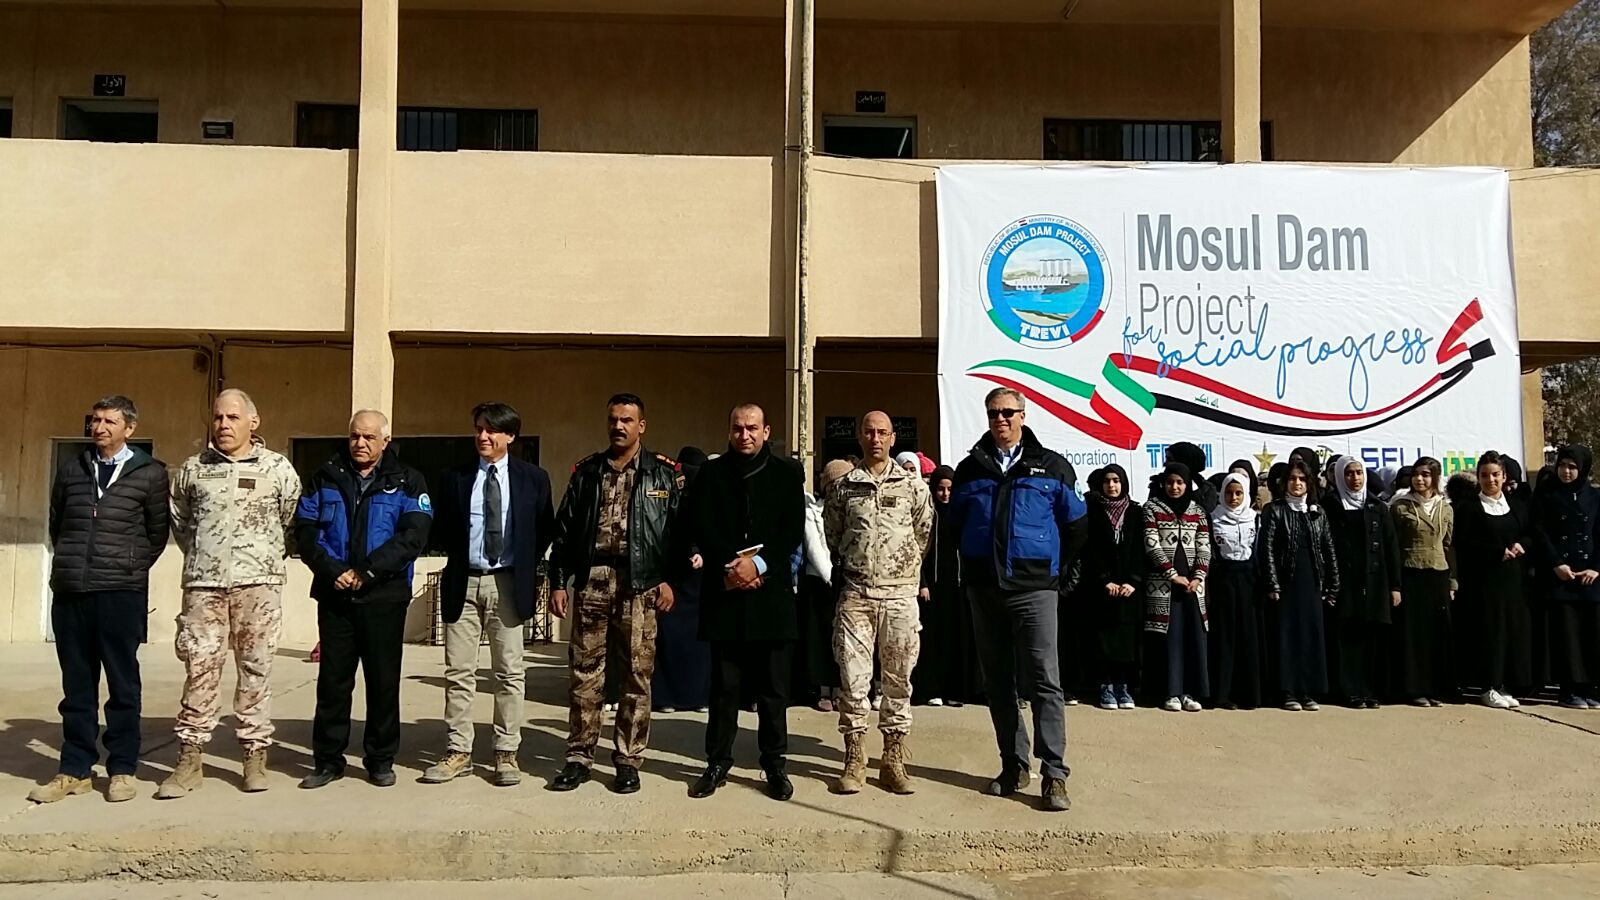 Mosul Dam Project for Social